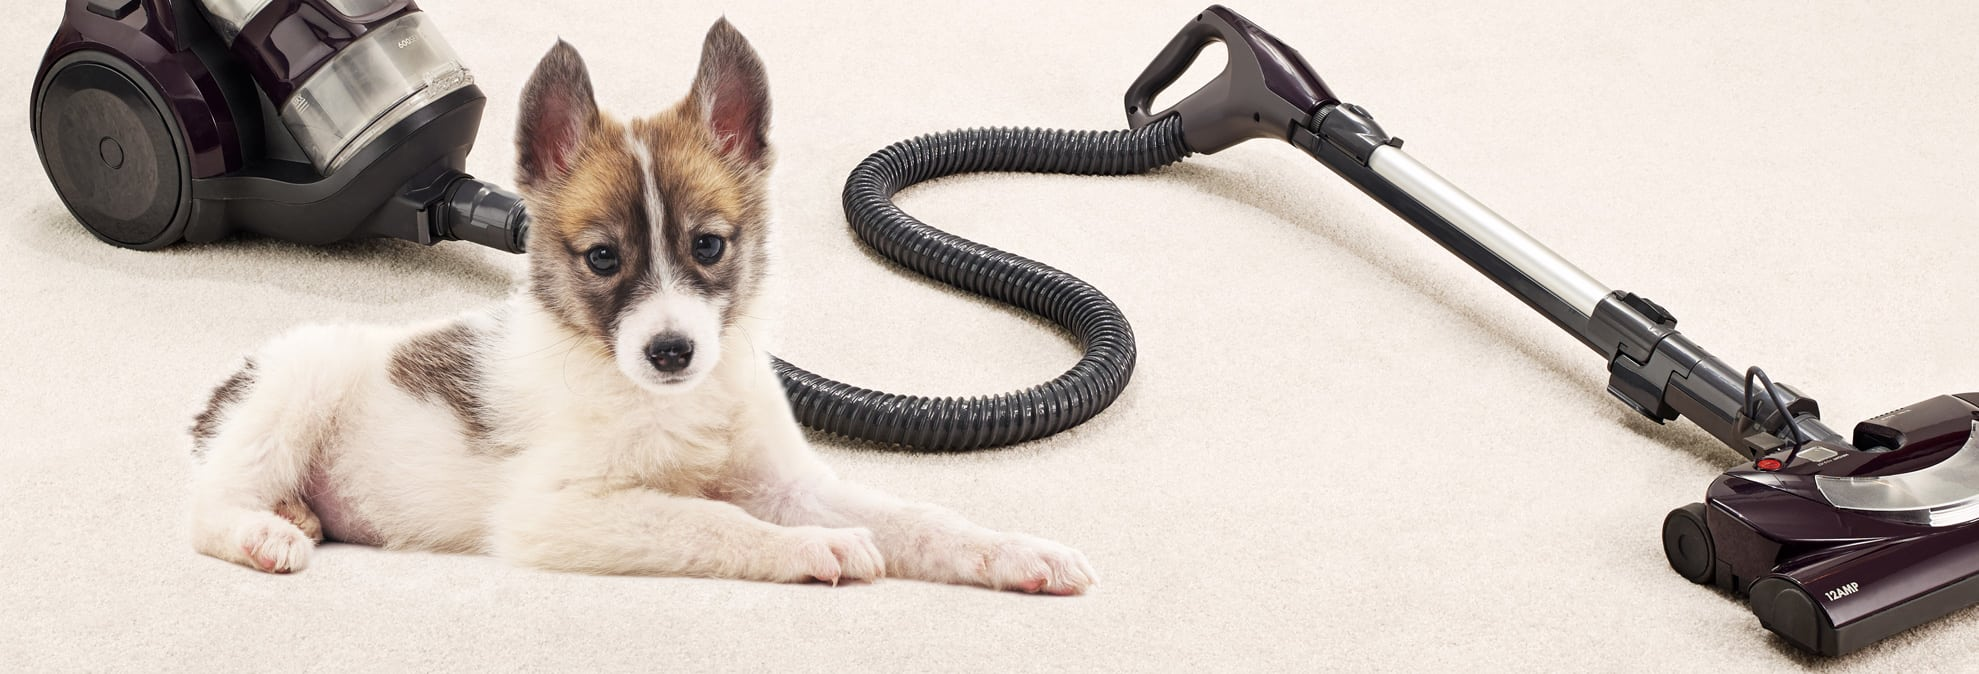 A dog sitting next to a vacuum cleaner